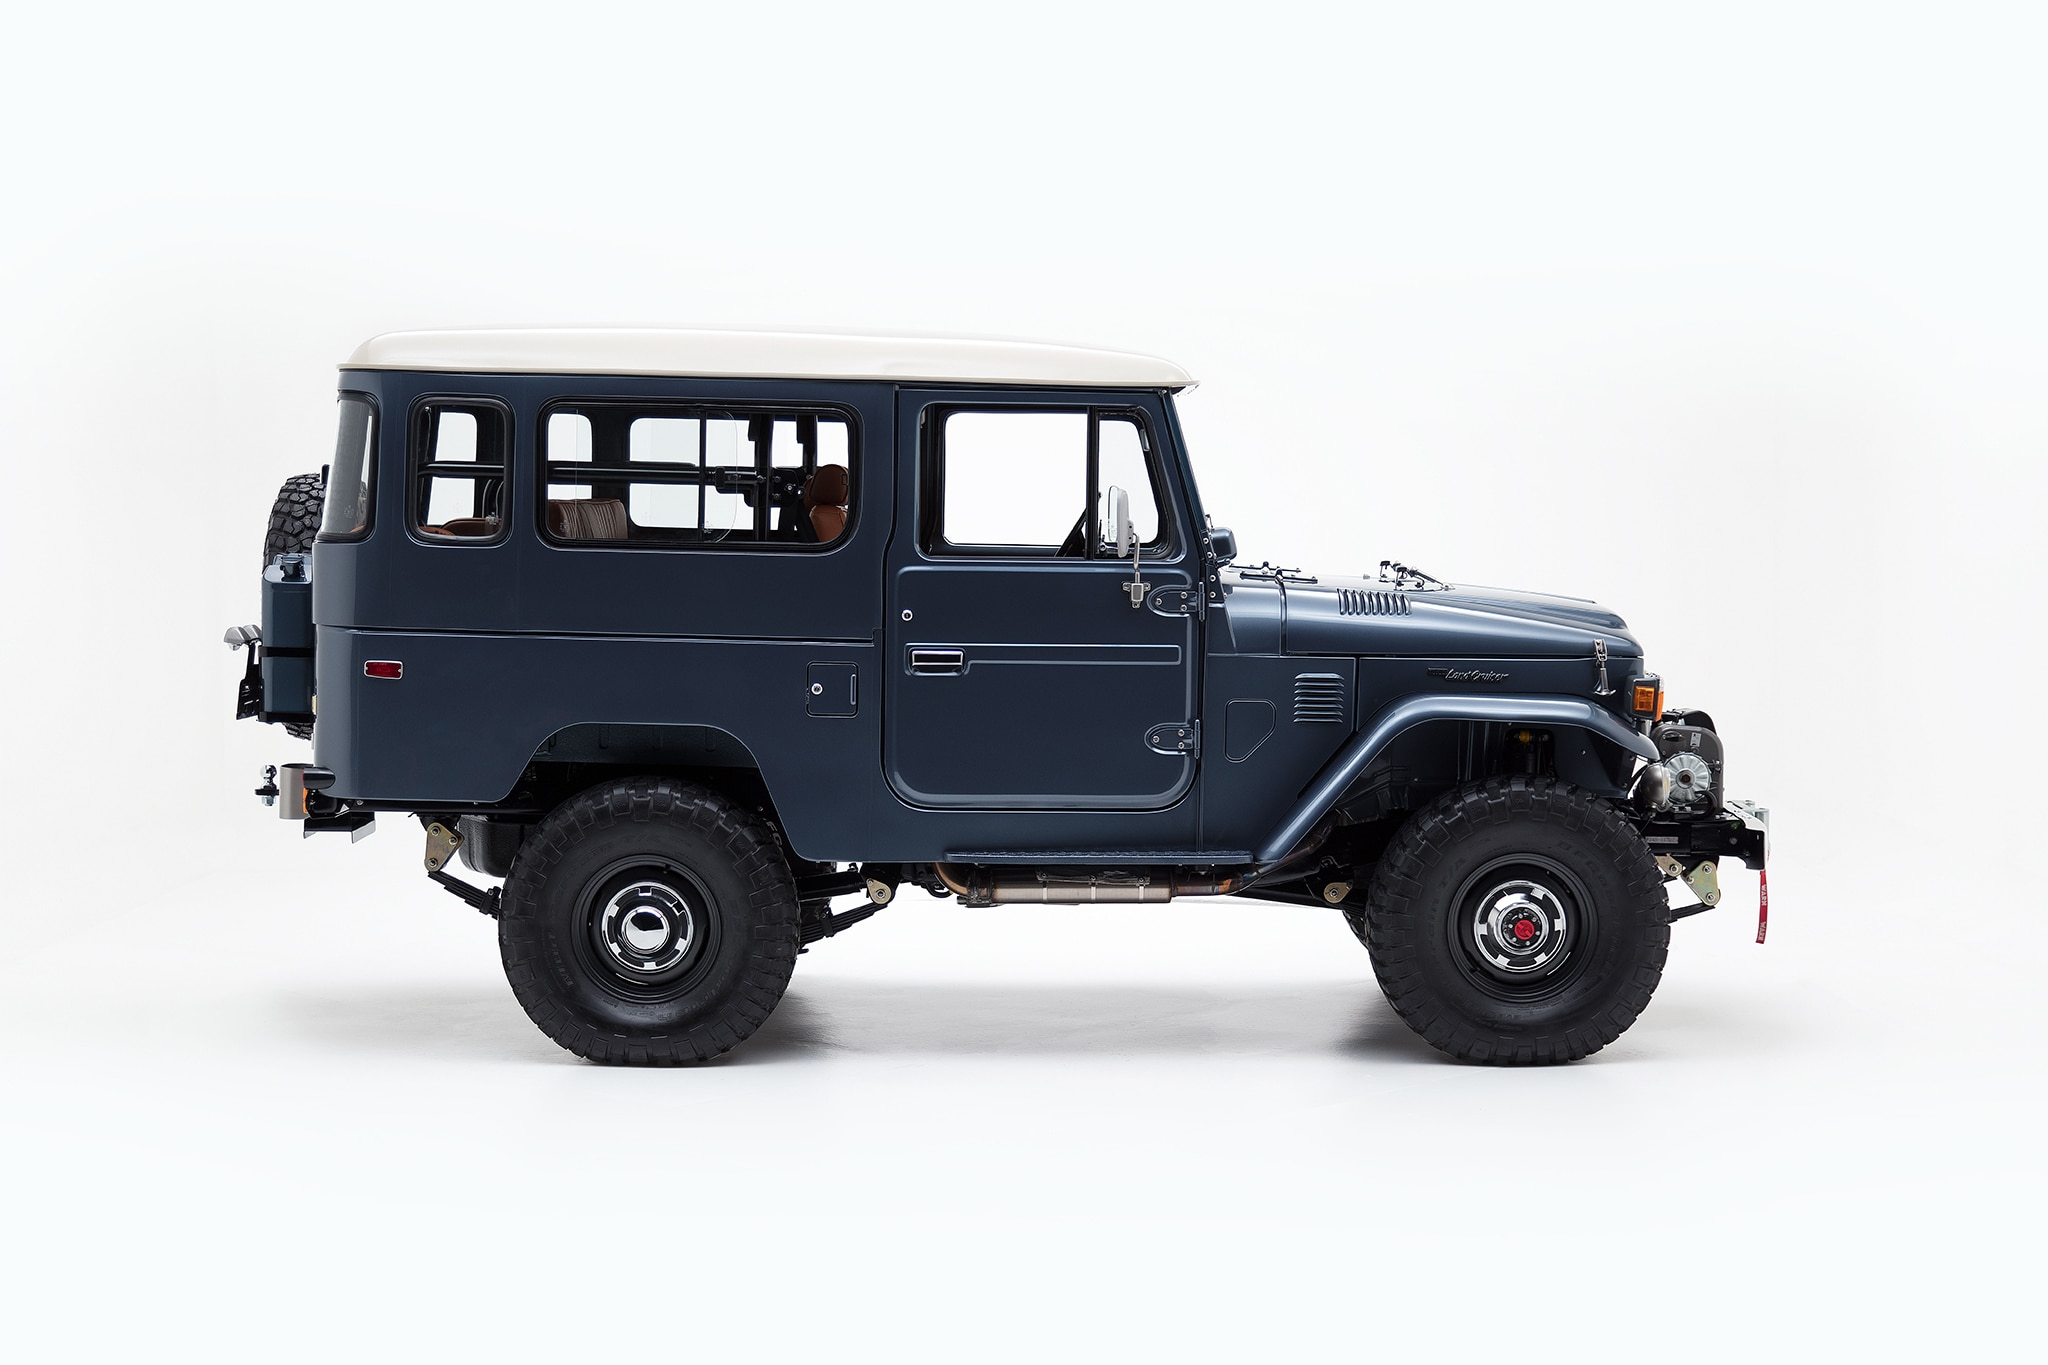 It Also Features Upgraded Front Disc Brakes, Old Man Emu Suspension, And  Vintage A/C And Heater Systems.